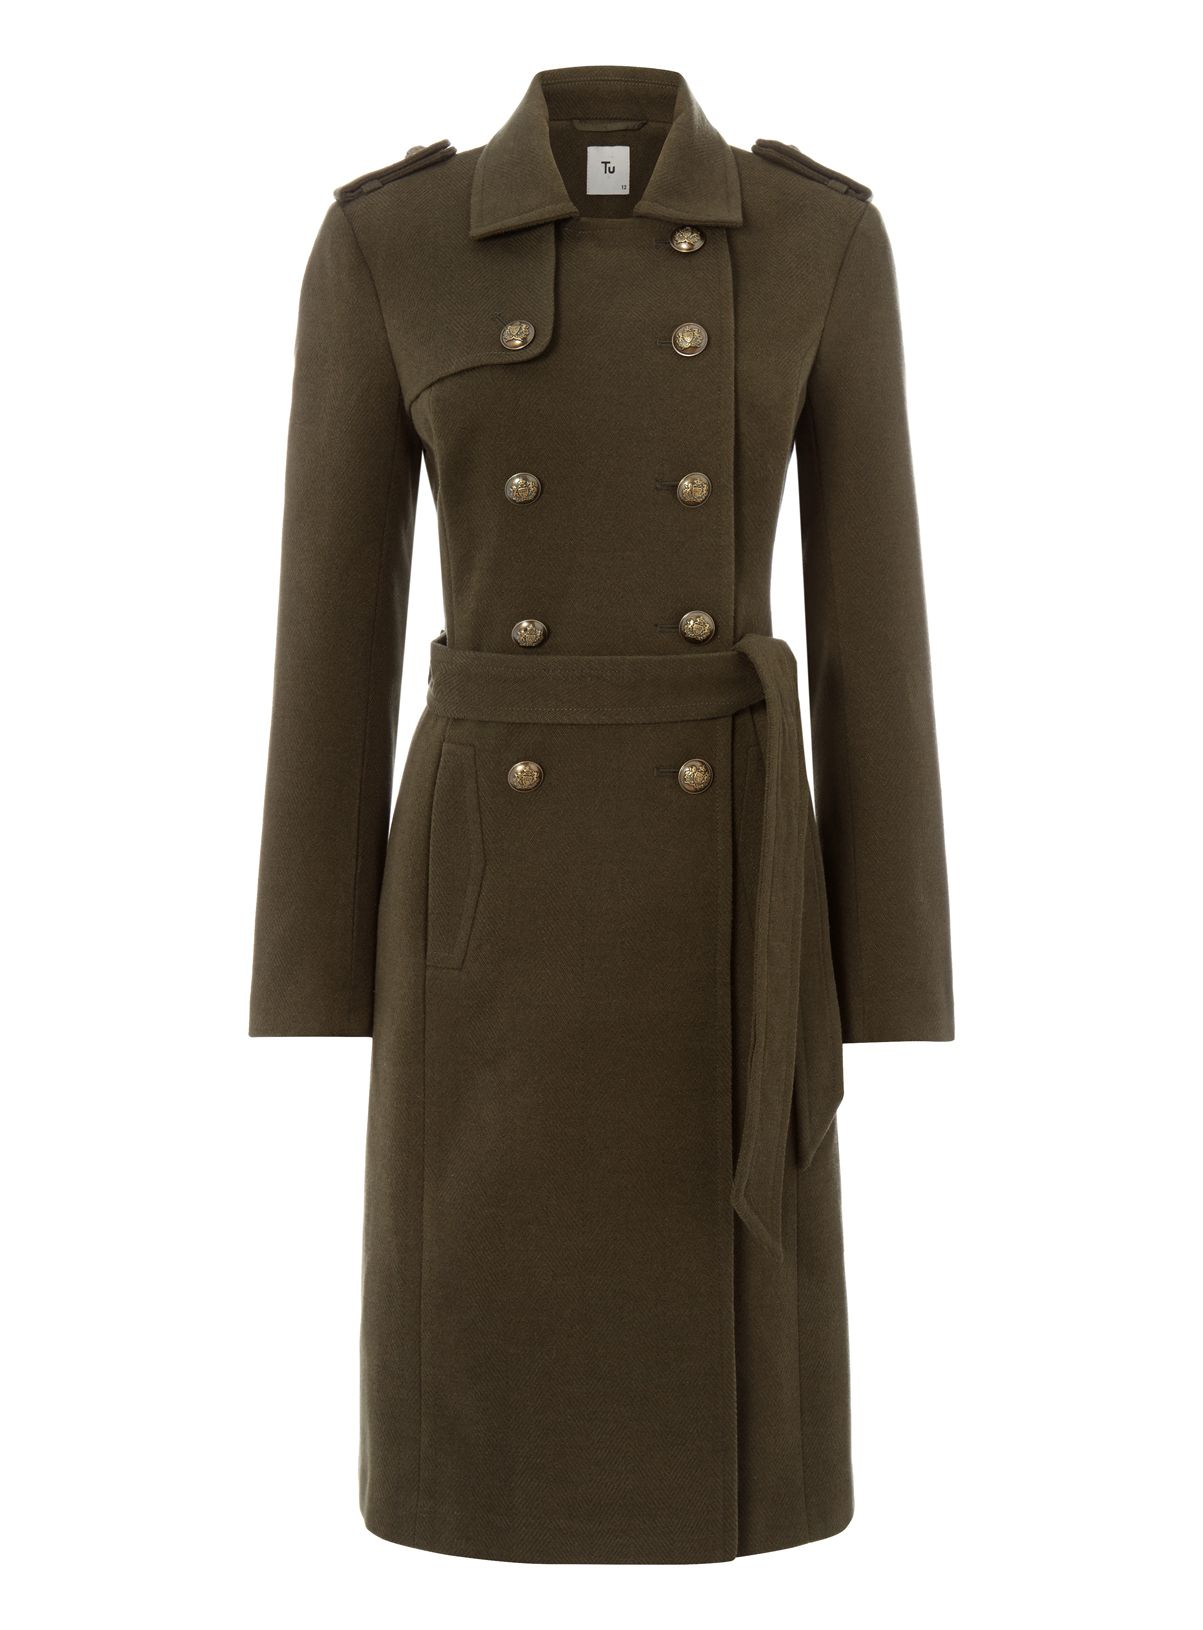 Womens Khaki Belted Military Coat | Tu clothing | Fashion ...